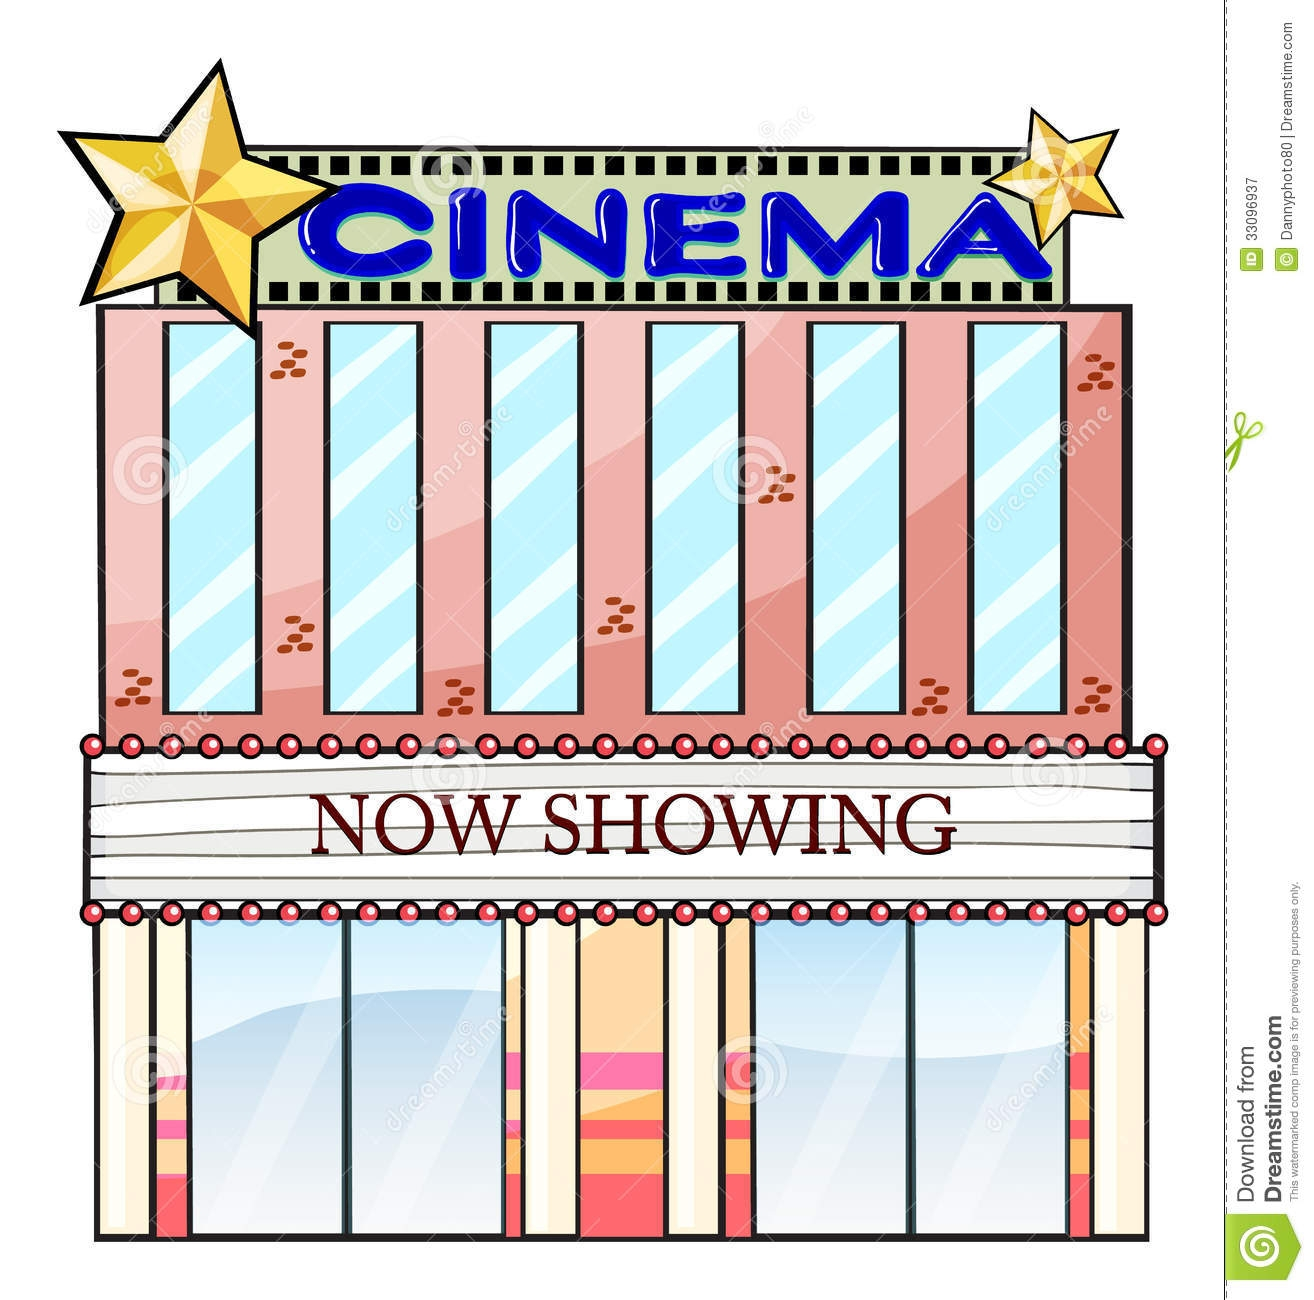 Theater building clipart image free library Movie Theater Building Clipart Clipart Panda Free Clipart ... image free library